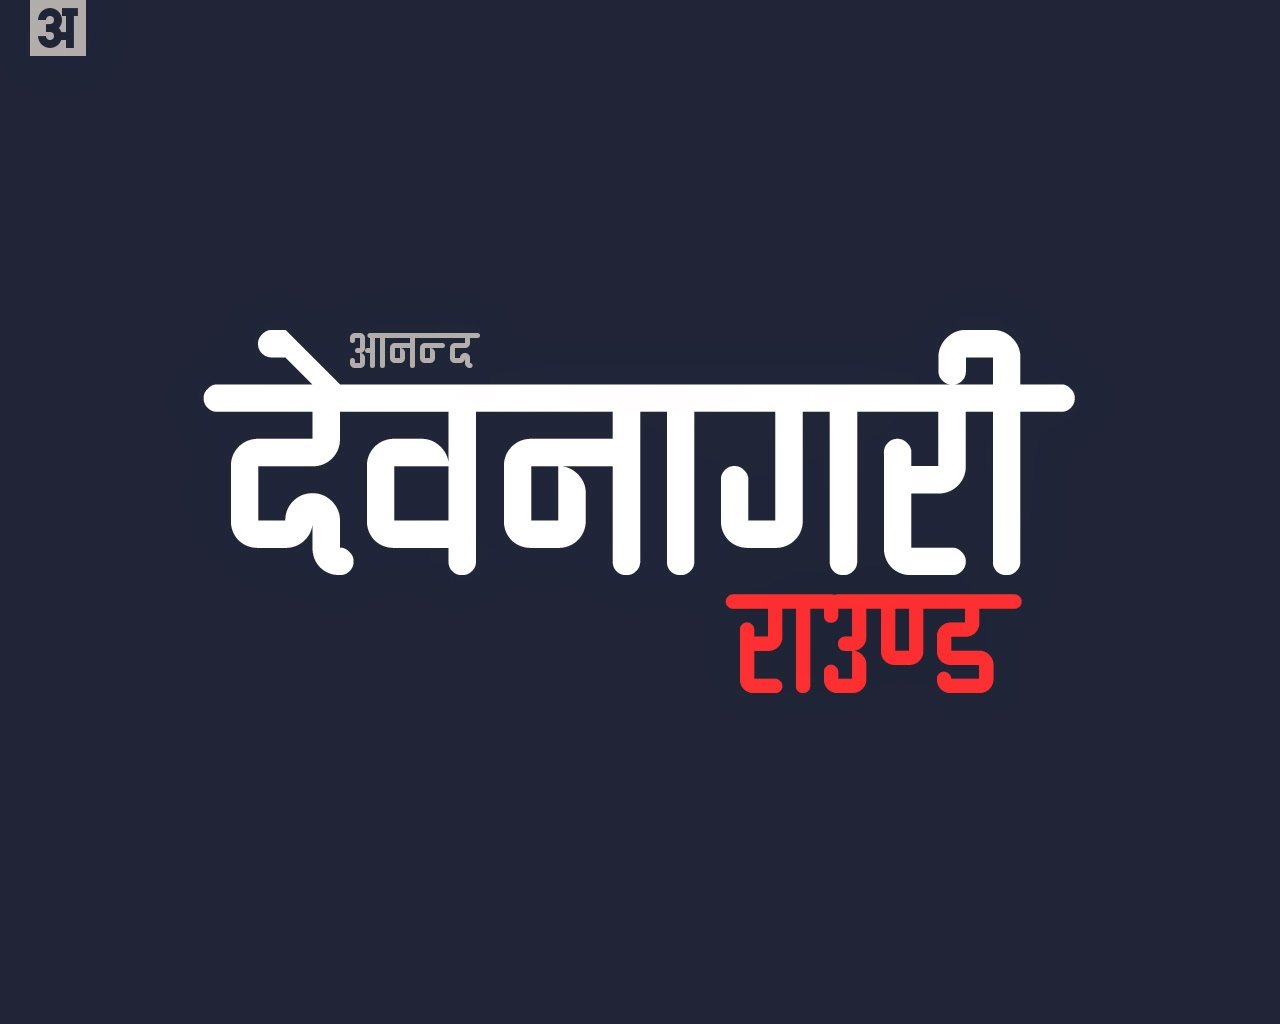 ... images and information: Devanagari Calligraphy Fonts Free Download